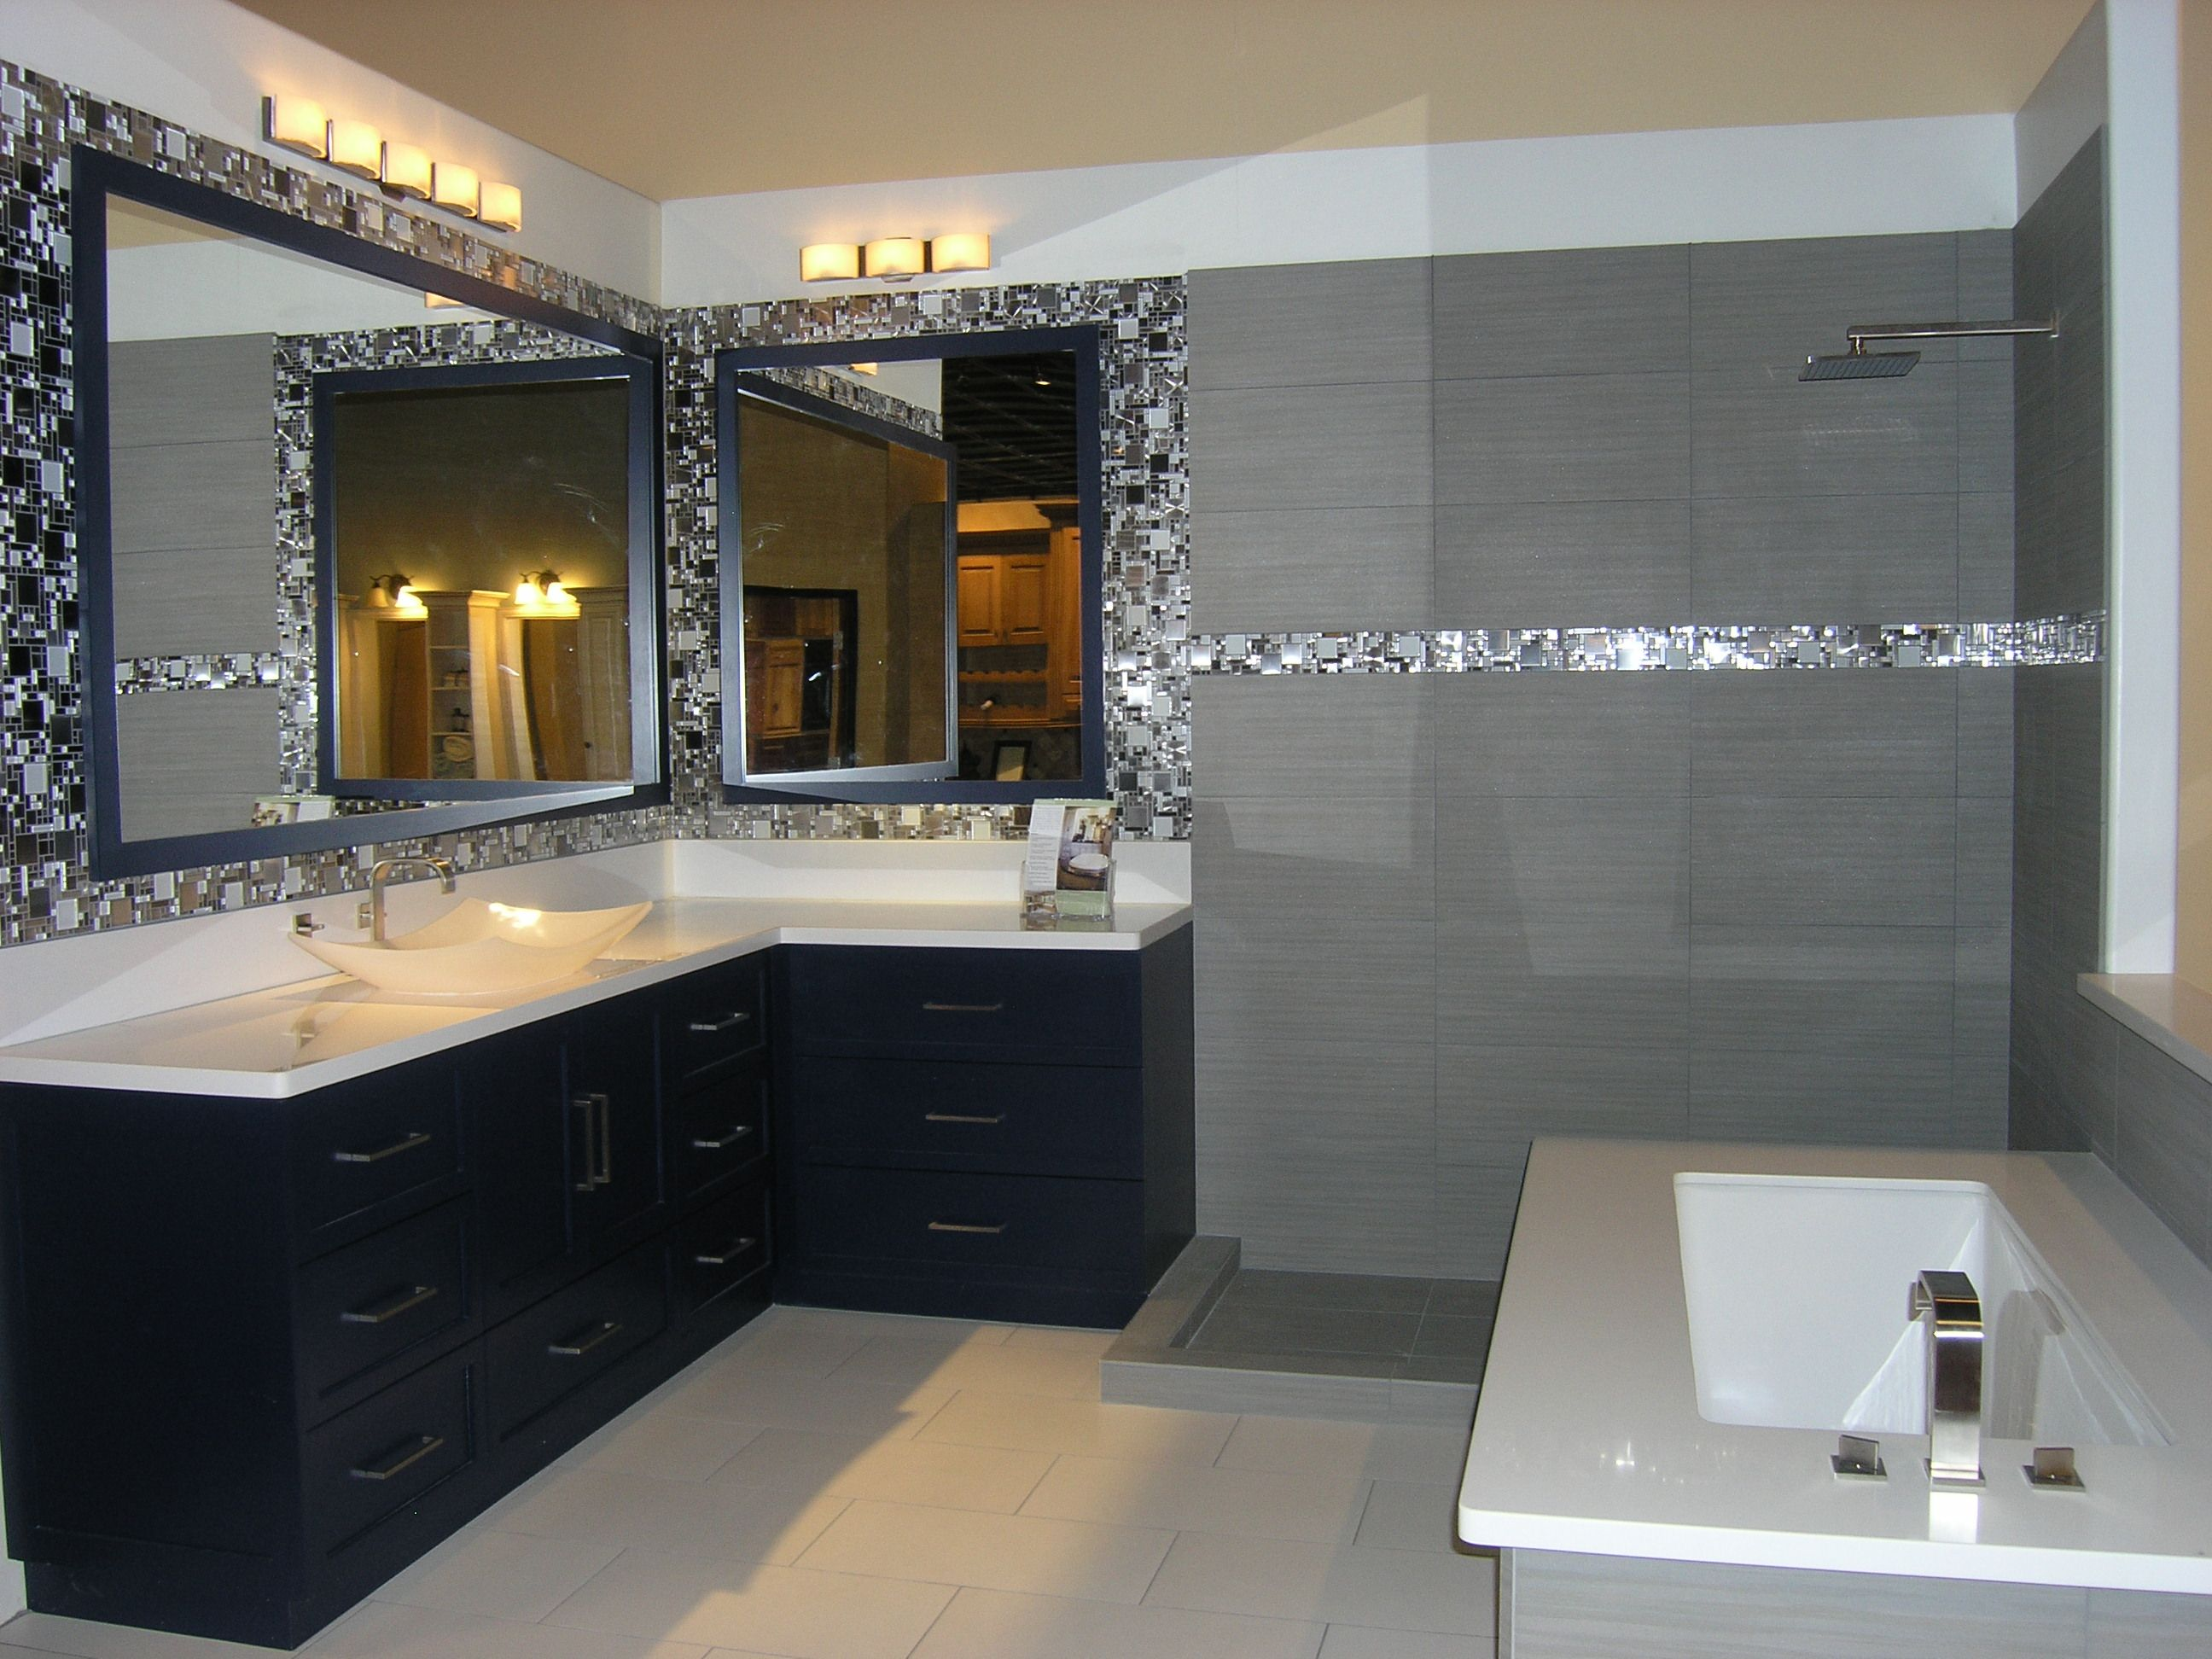 Gentil A Sleek And Modern Bathroom Space In The Classy Closets Chandler, Arizona  Showroom. We Love The Mix Of Dark Blue, White And Gray. Isnu0027t Clean,  Openness Of ...